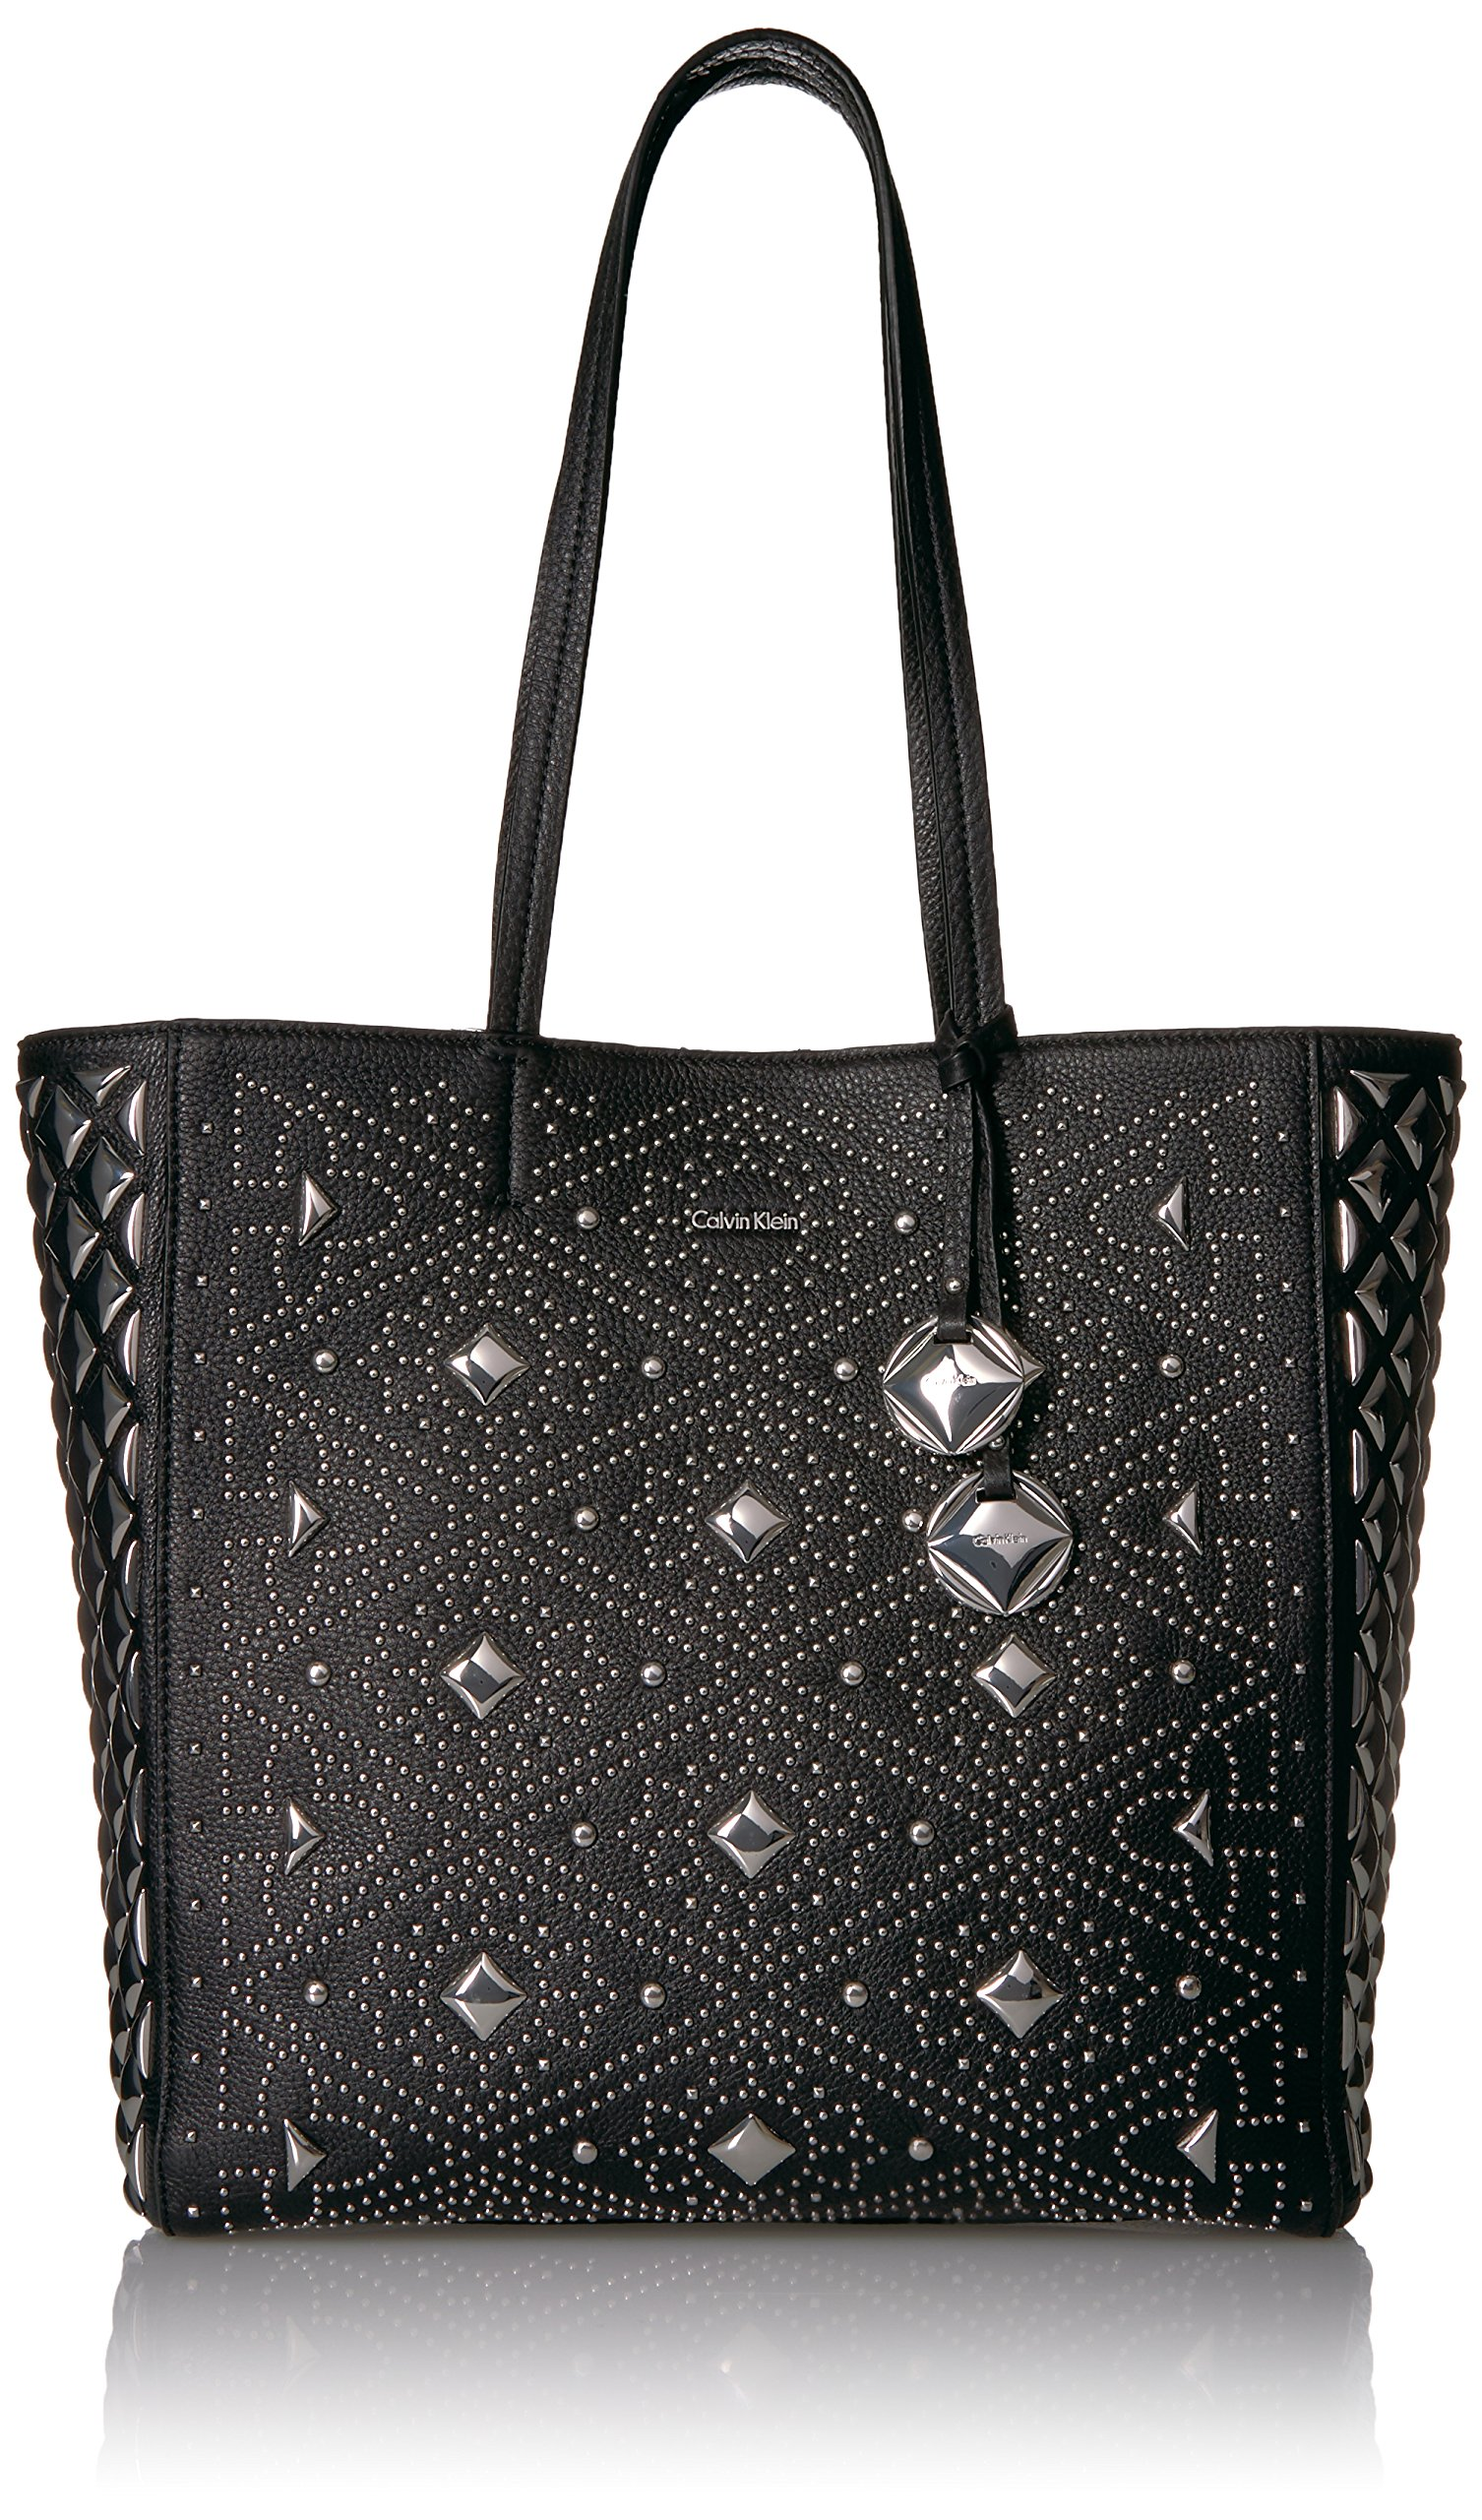 Calvin Klein Avery Pebble All-Over Pyramid Stud Embellished N/s Tote